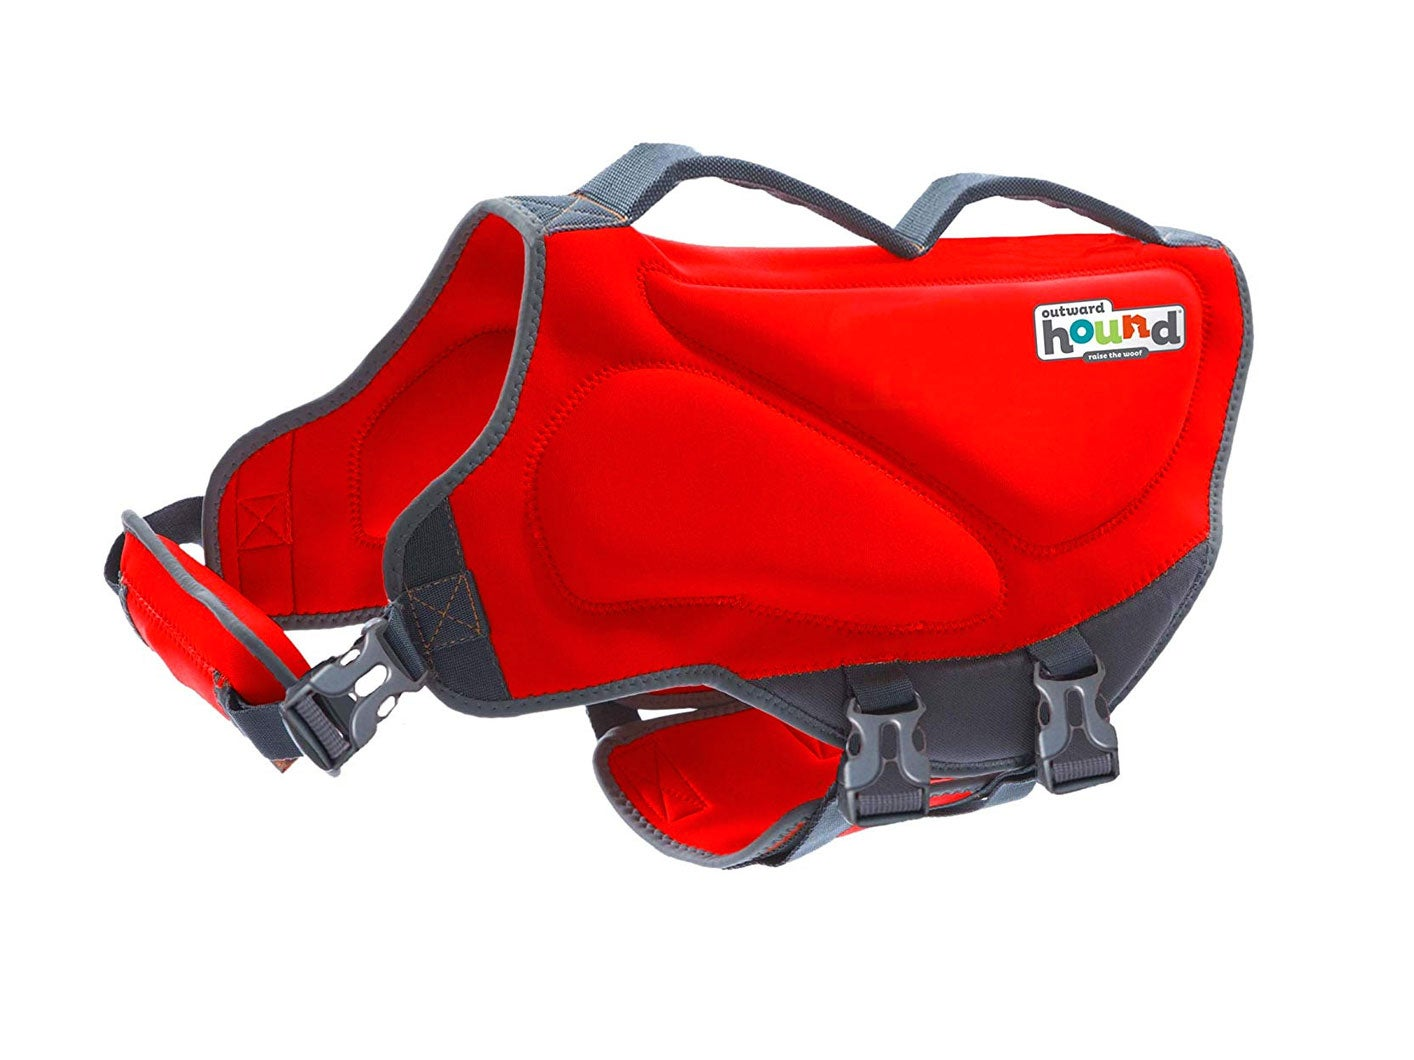 Outward Bound red doggie lifevest with handles